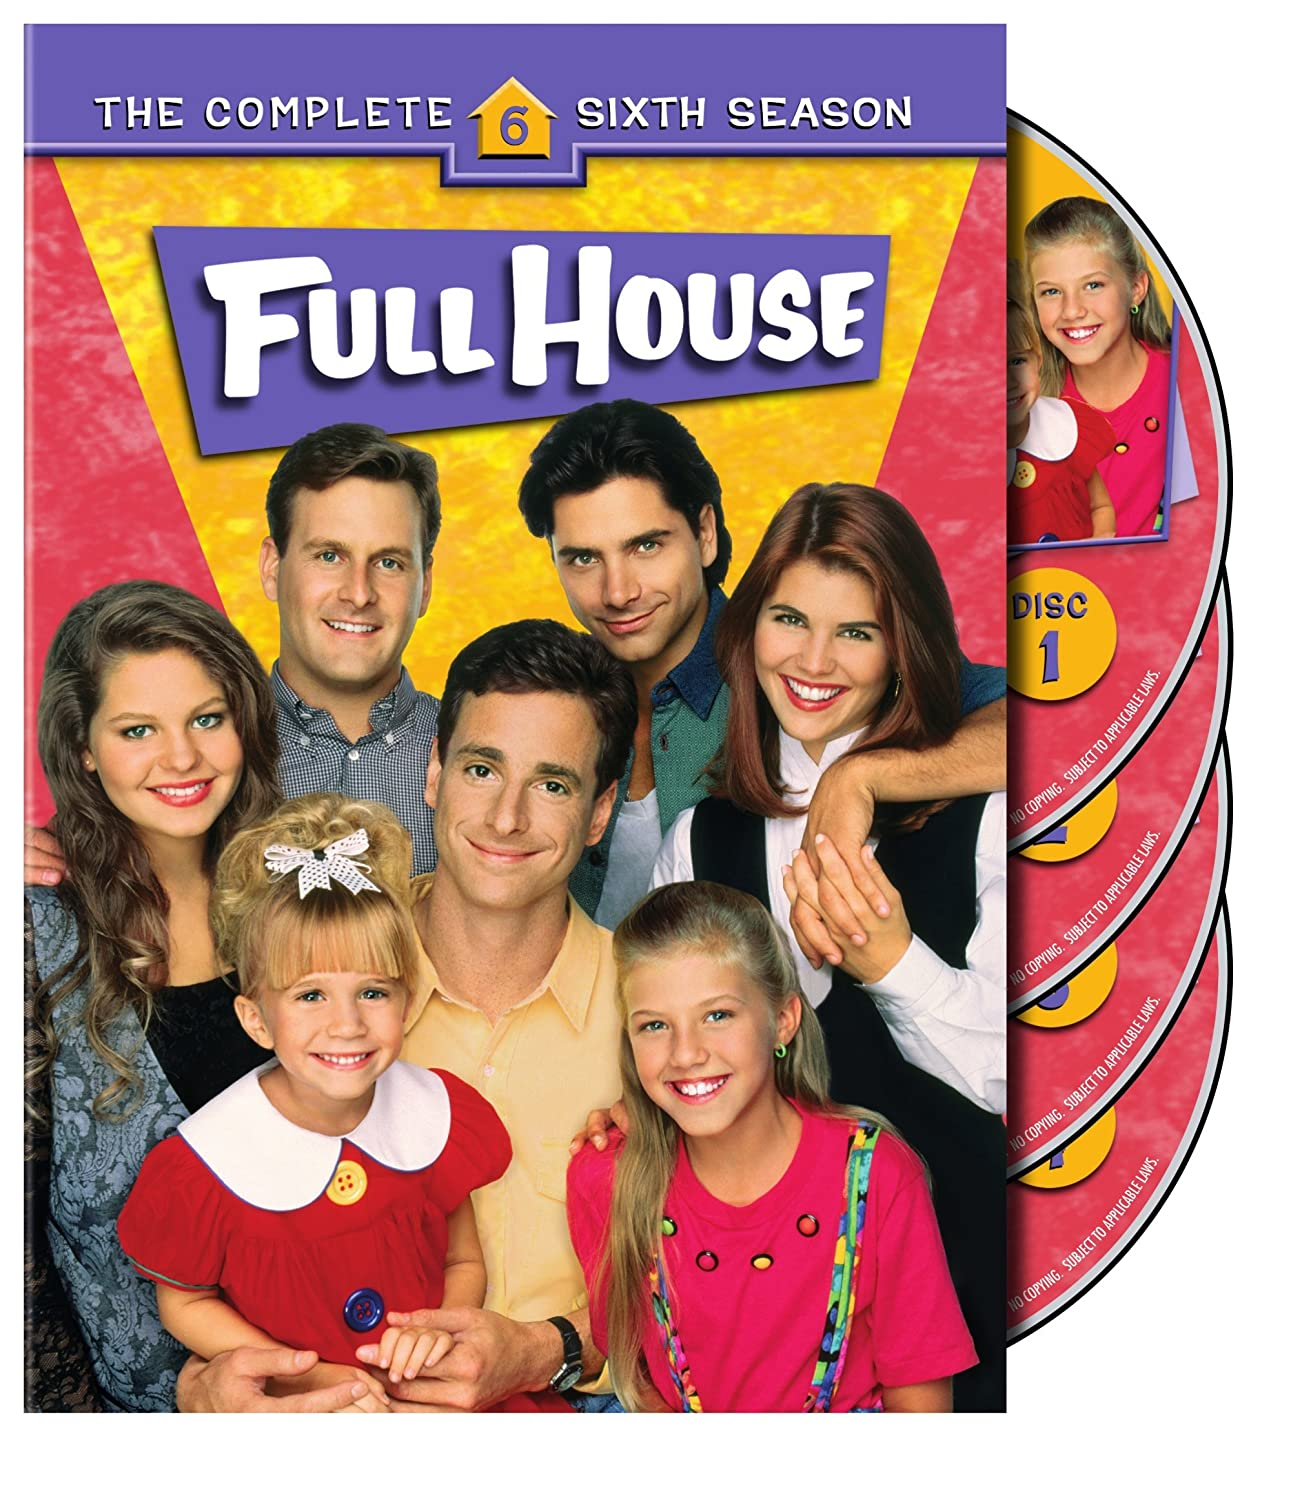 Full House: The Complete Sixth Season Ashley Olsen Mary-kate Olsen Bob Saget John Stamos